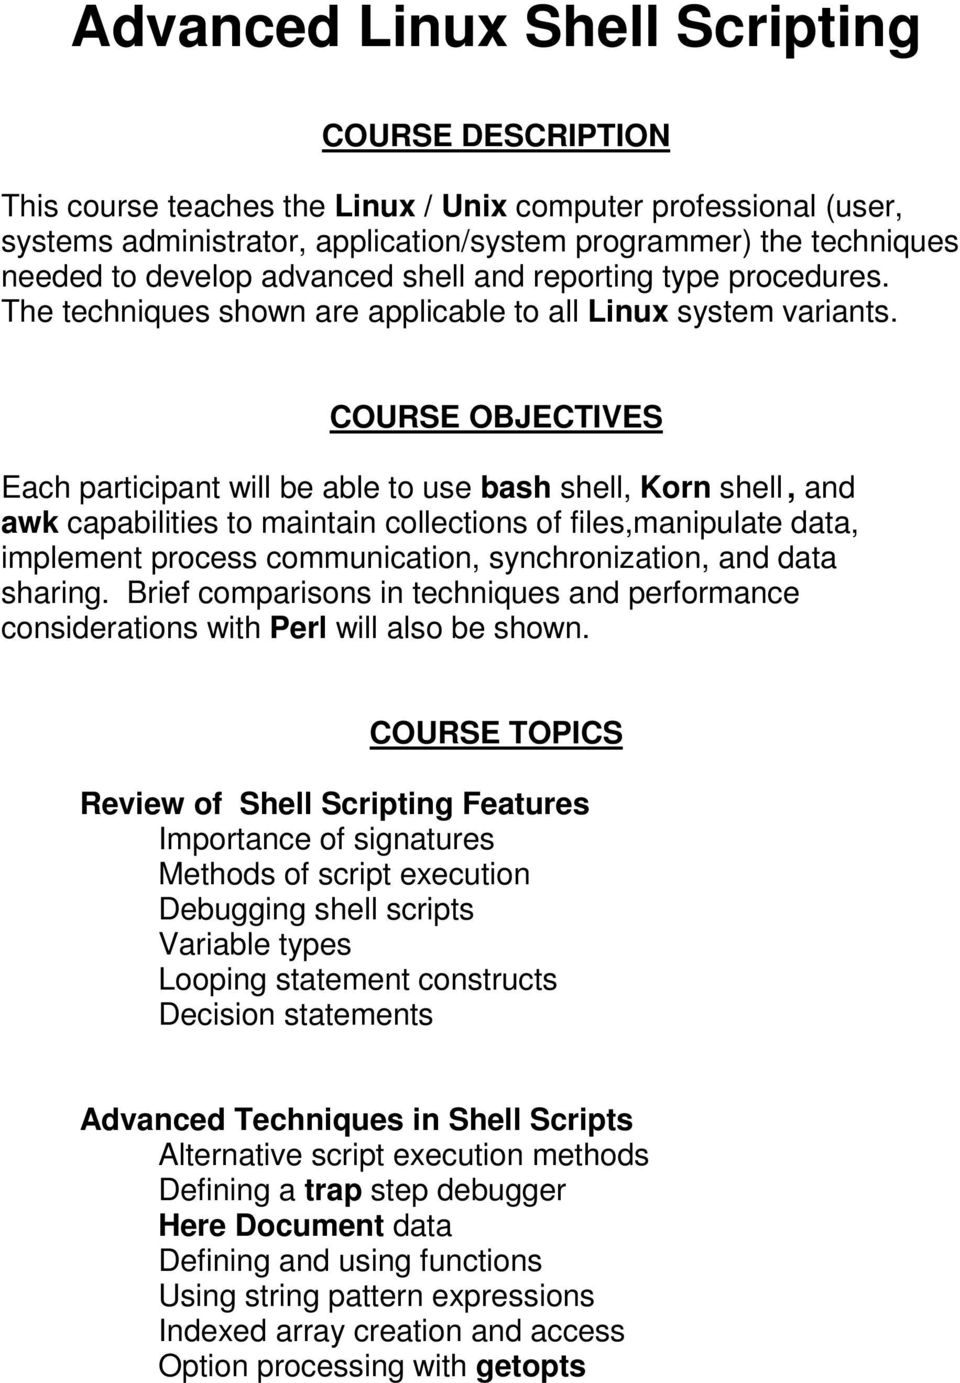 COURSE OBJECTIVES Each participant will be able to use bash shell, Korn shell, and awk capabilities to maintain collections of files,manipulate data, implement process communication, synchronization,